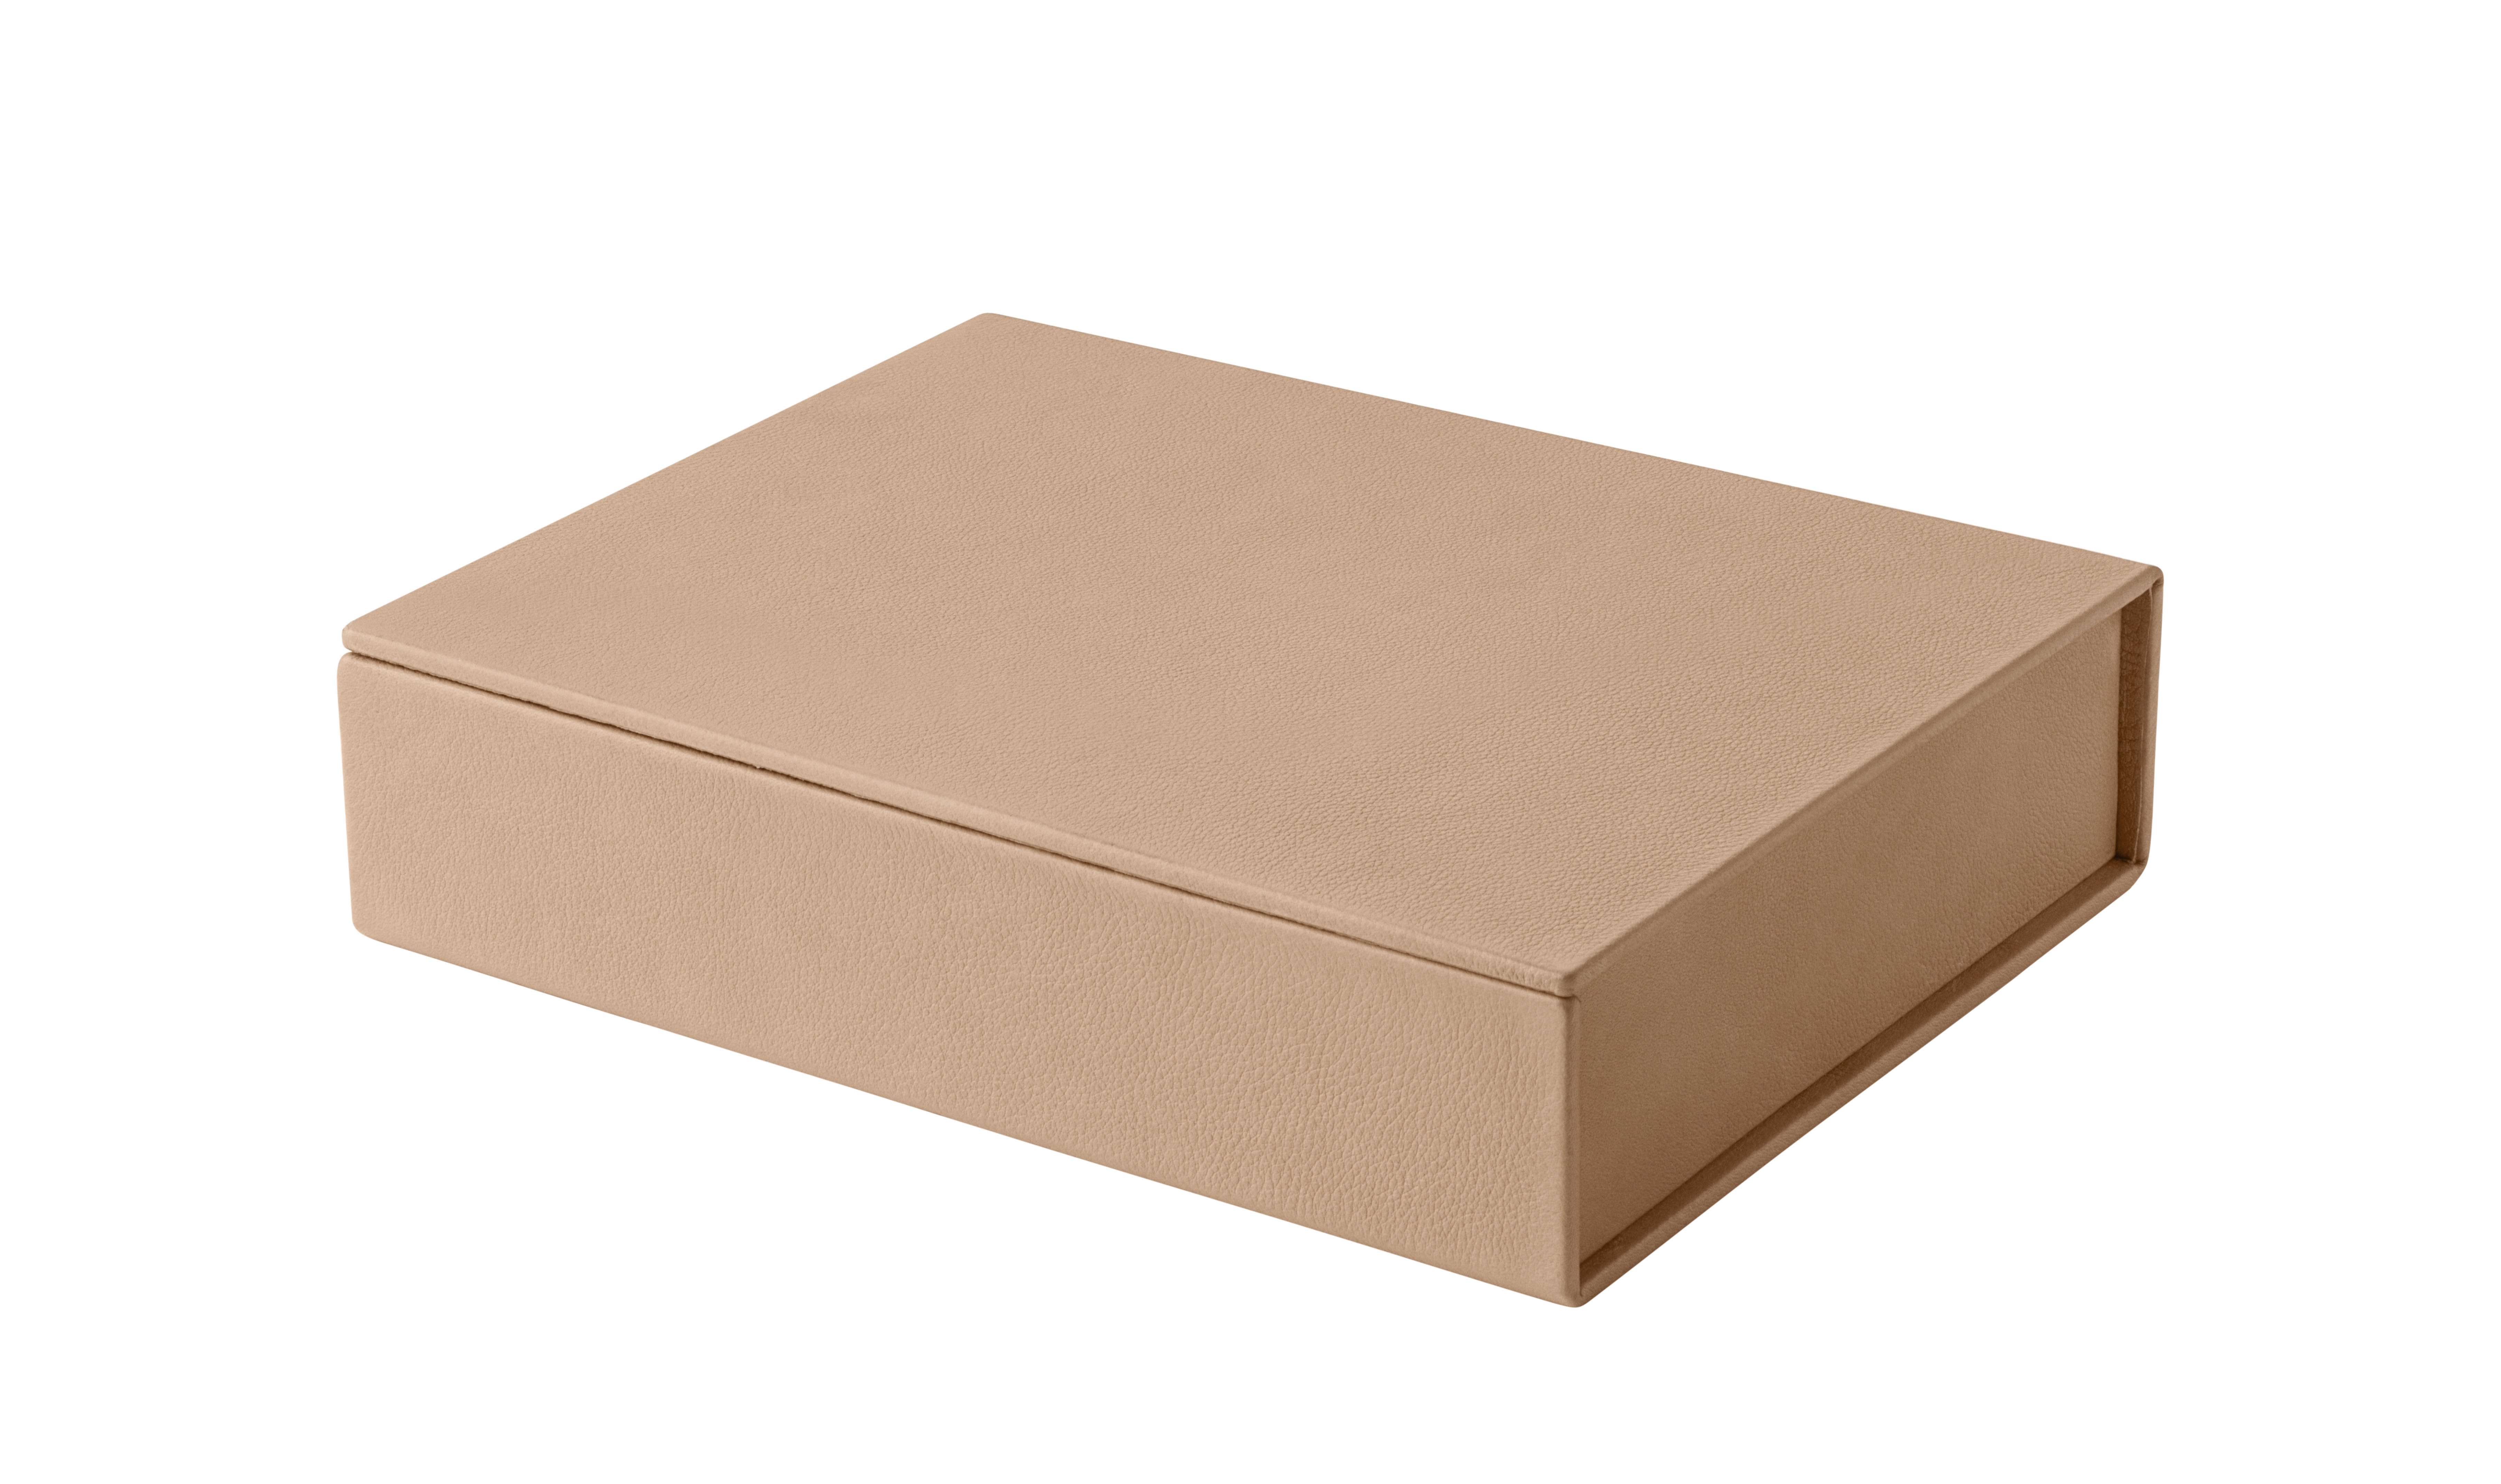 Decoration - Decorative Boxes - Small Box - / Leather - Hand-made - Limited numbered edition by Fritz Hansen - Natural - Linen, Recycled leather